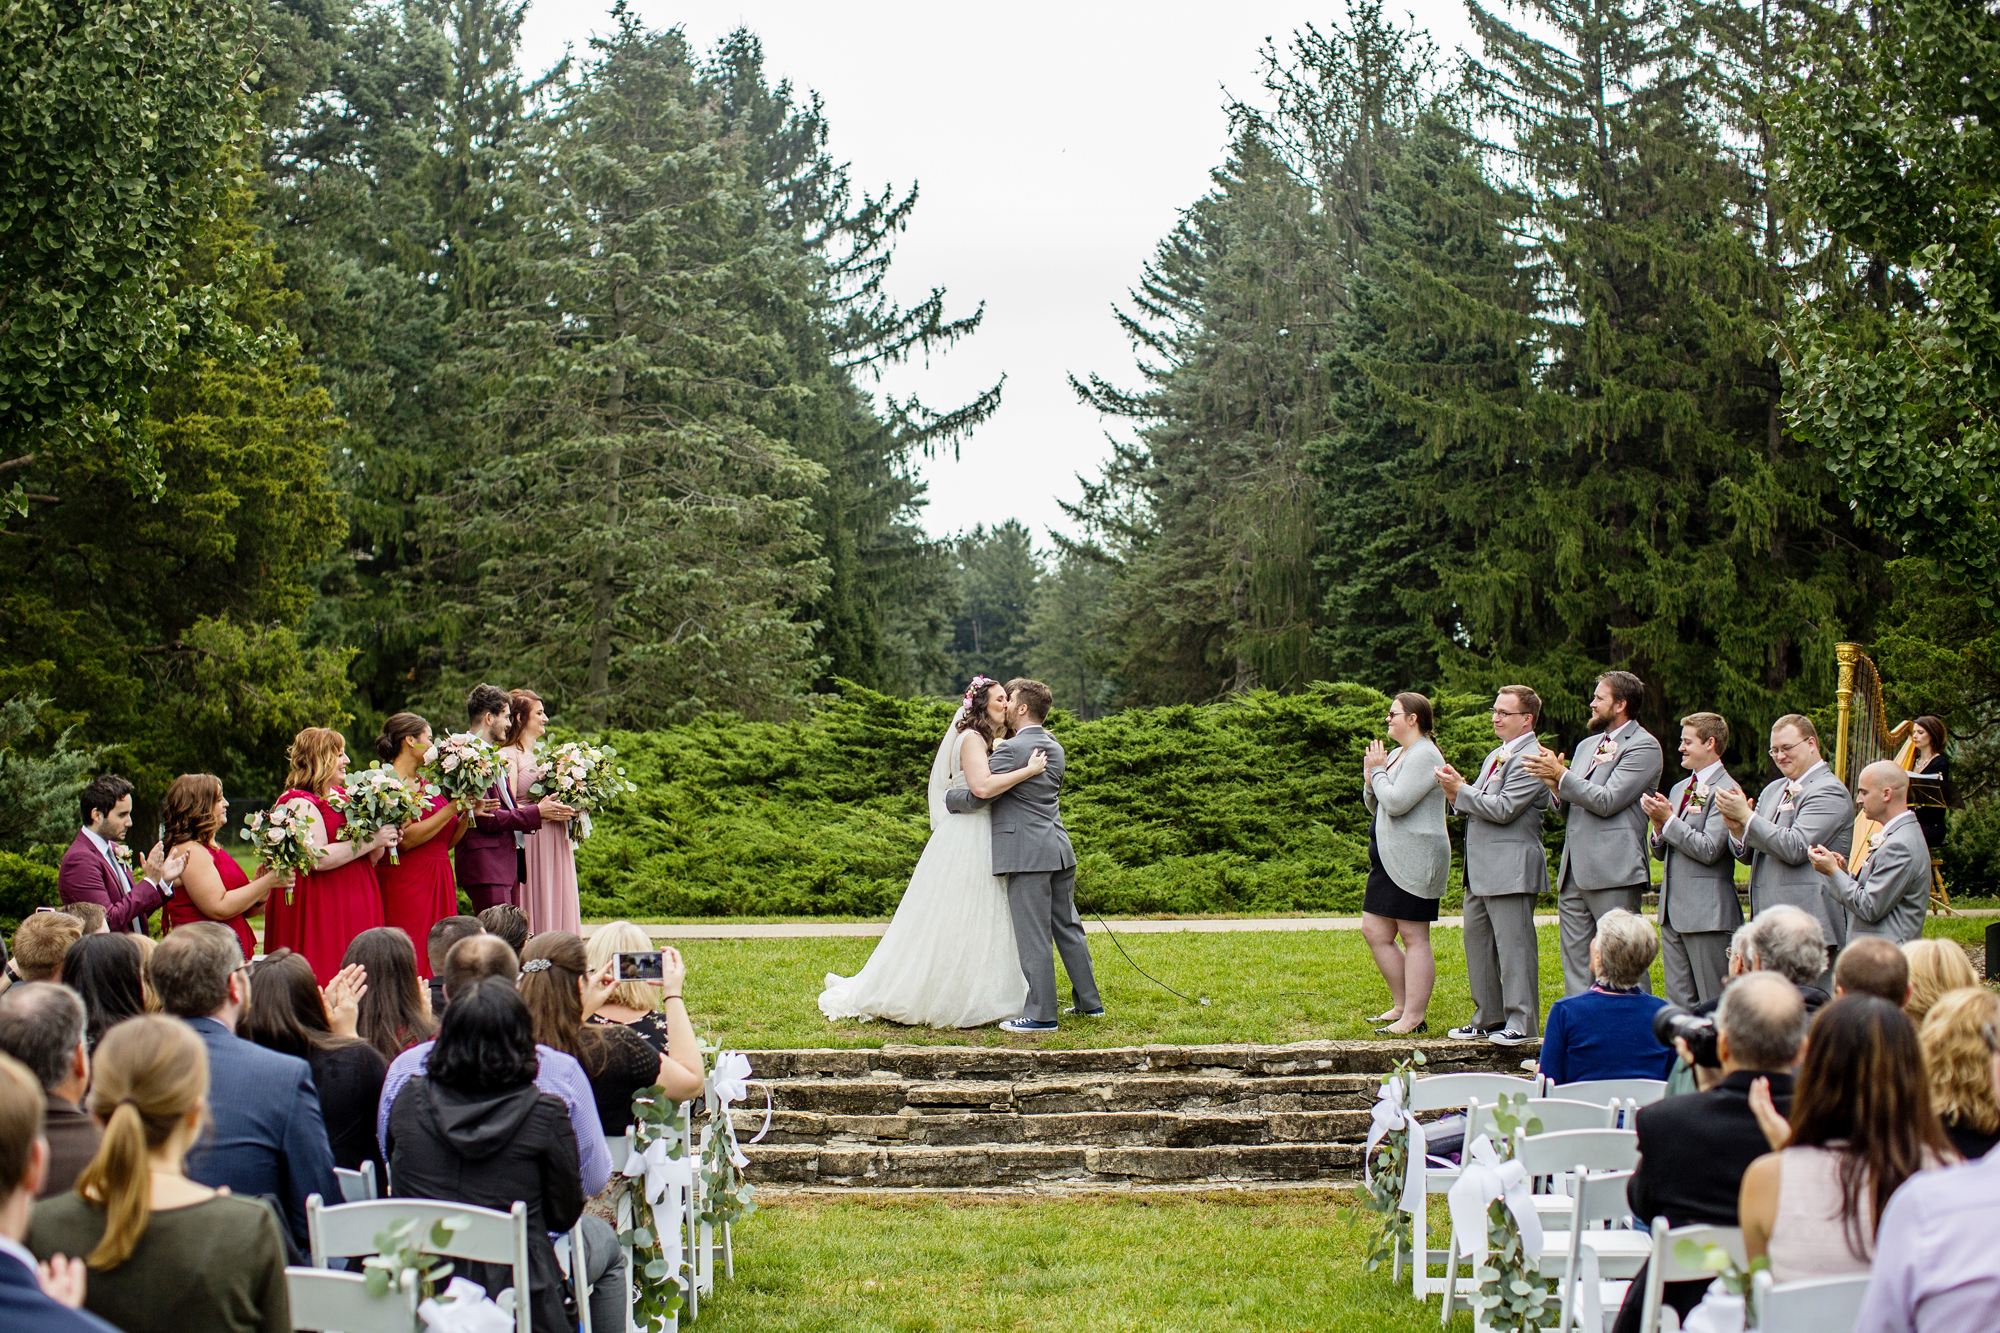 Seriously_Sabrina_Photography_Lisle_Illinois_Morton_Arboretum_Wedding_Day_Gowen75.jpg